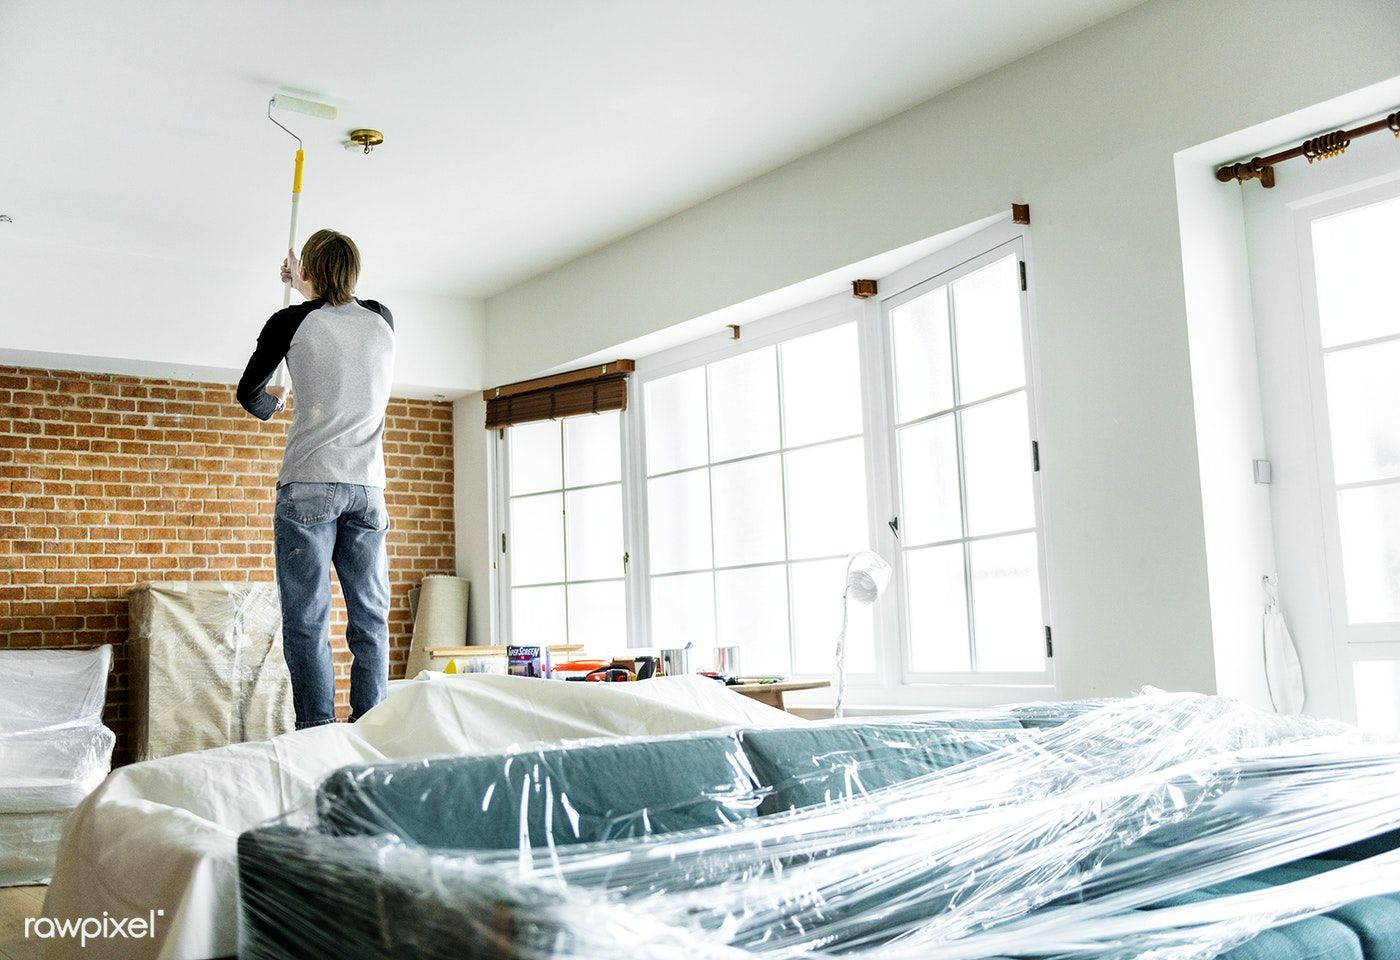 Download premium image of People renovating the house 387171 images